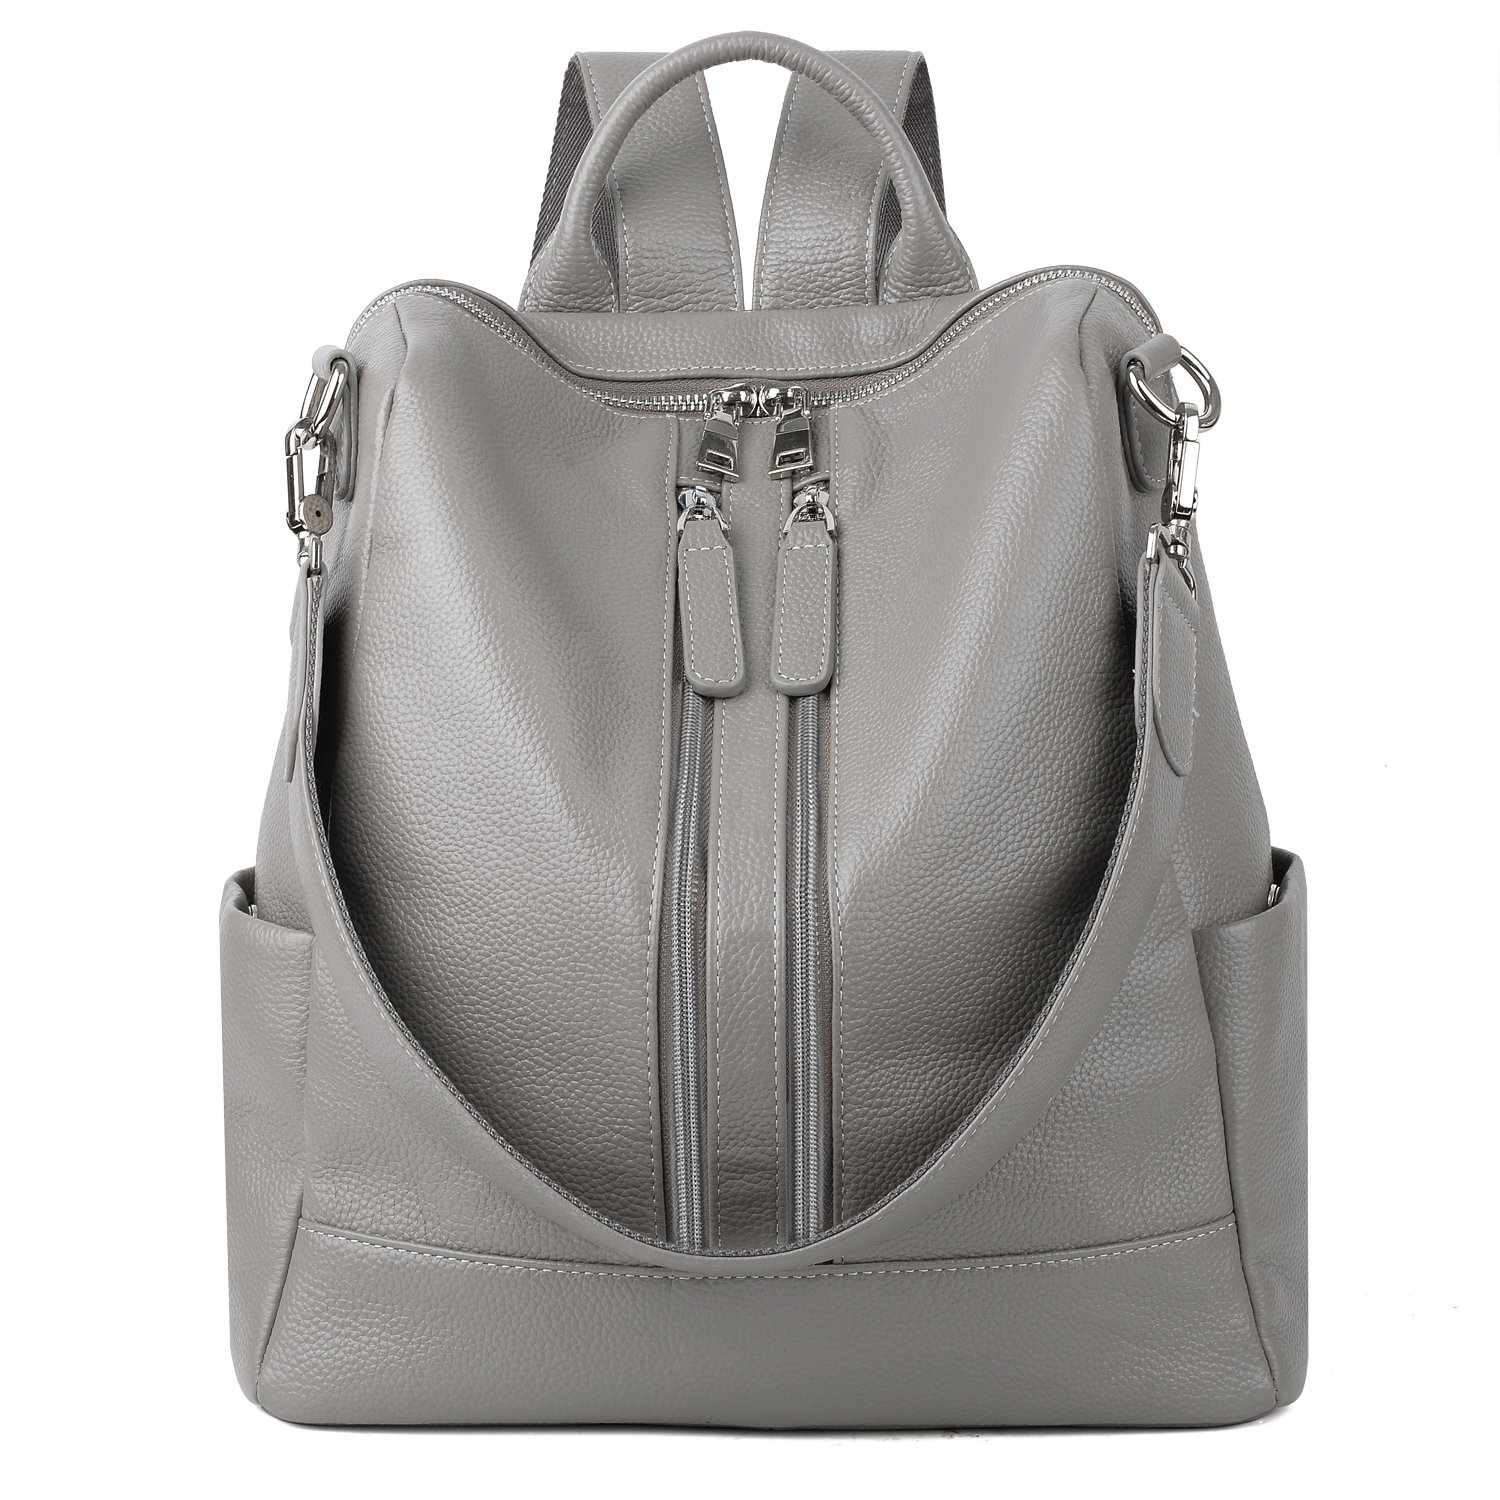 YALUXE Women's Convertible Real Leather Backpack Versatile Shoulder Bag (Upgraded 3.0) Grey